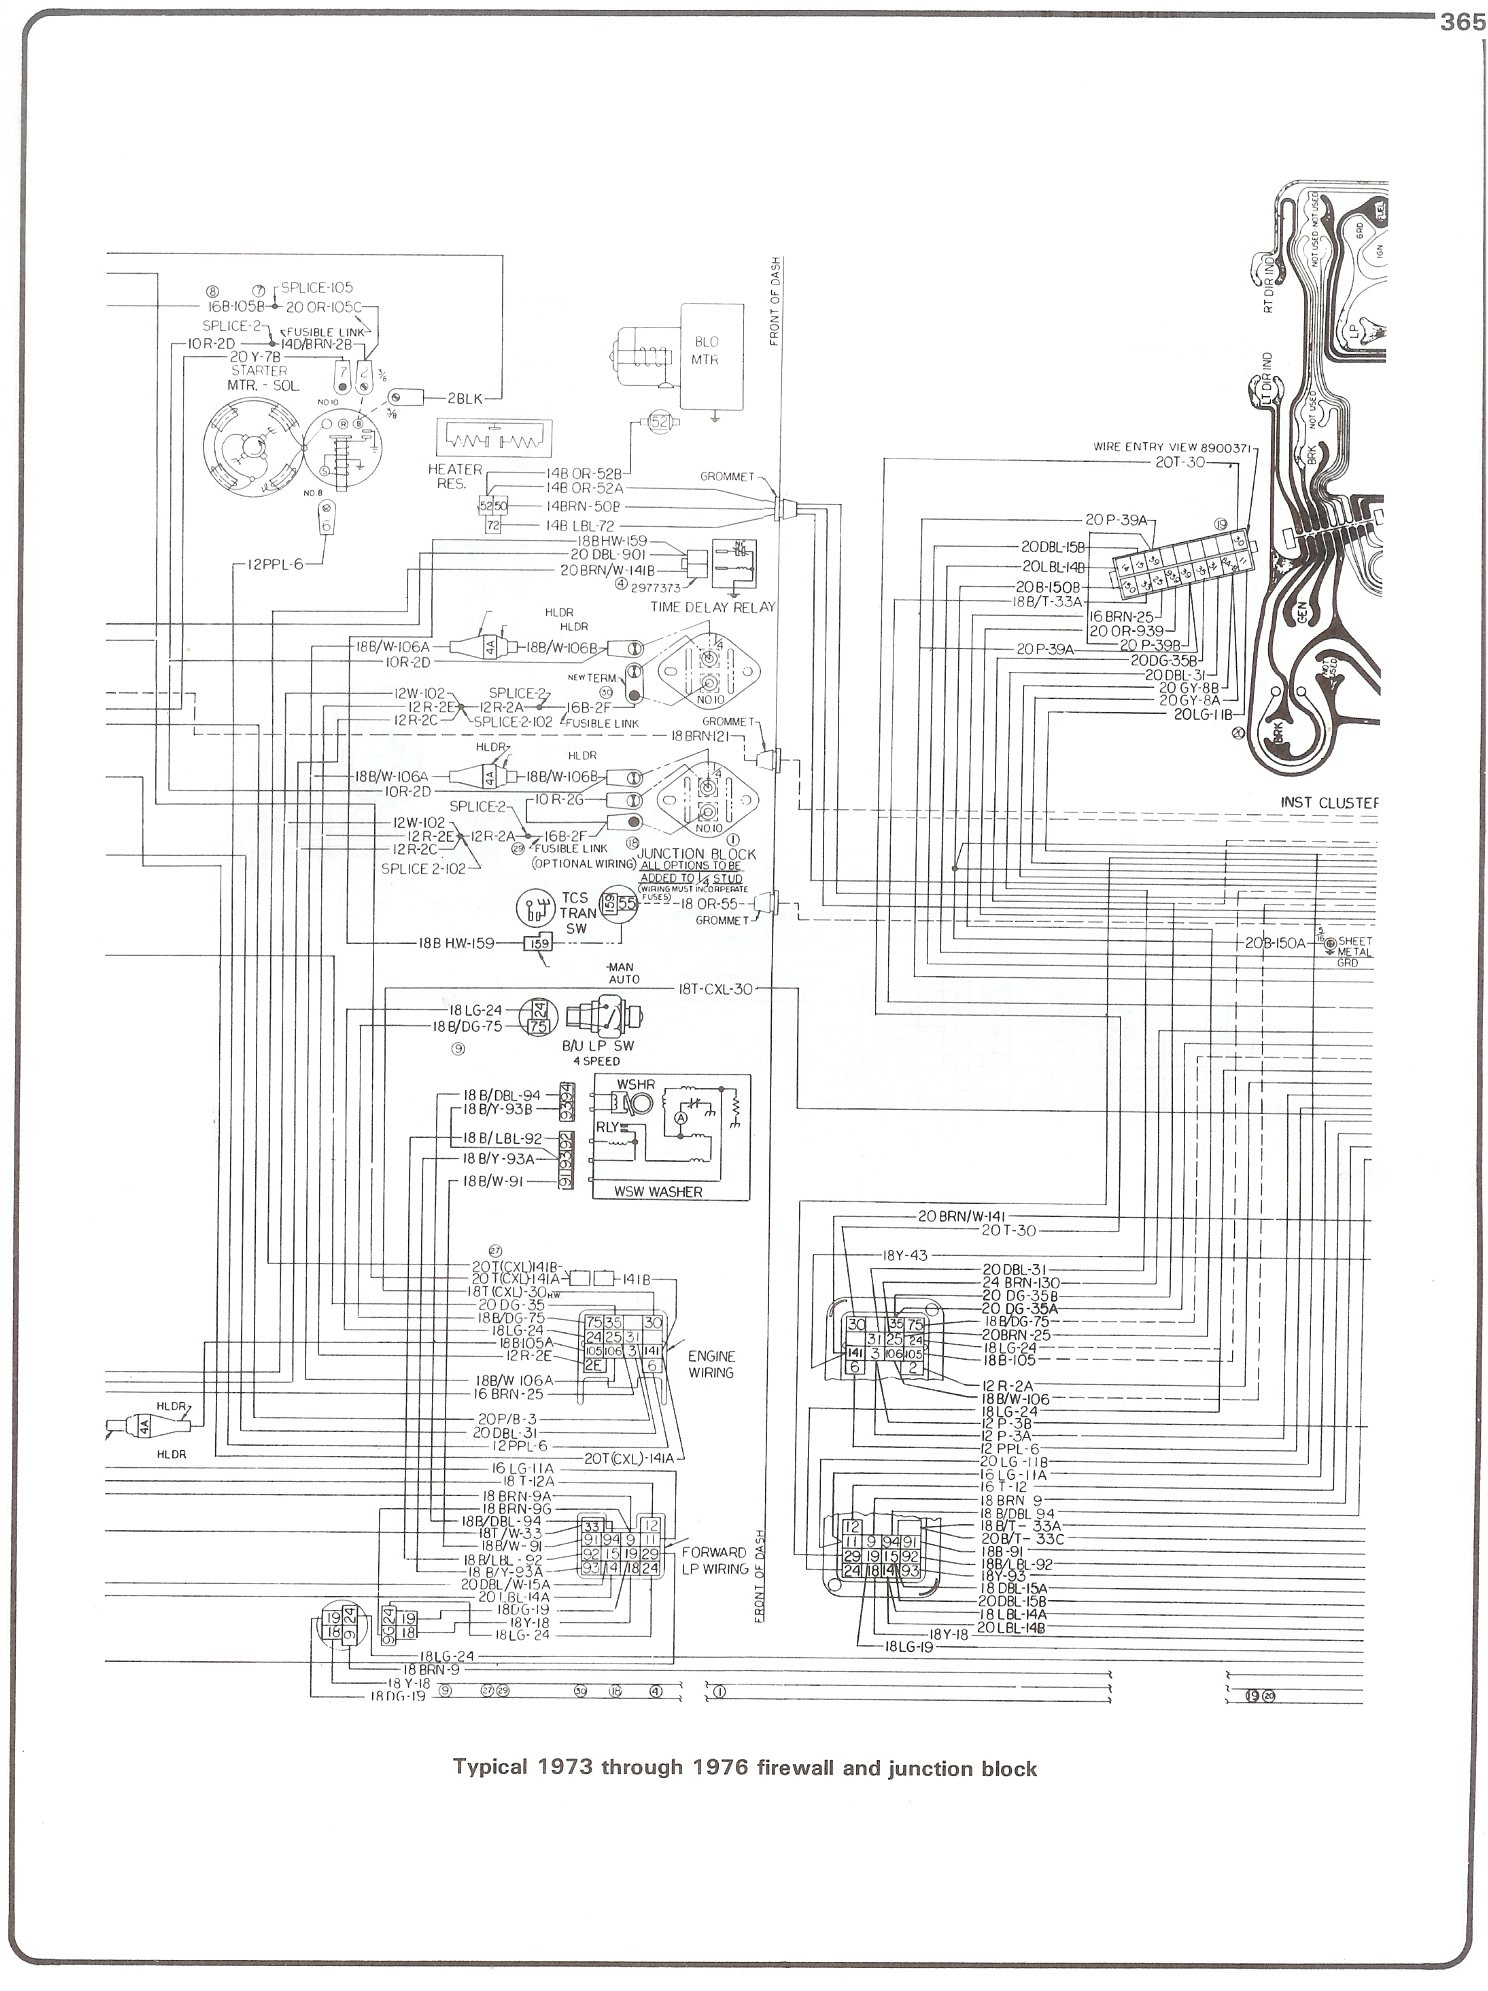 73 76_firewall_junct complete 73 87 wiring diagrams 1982 chevy truck engine wiring diagram at reclaimingppi.co